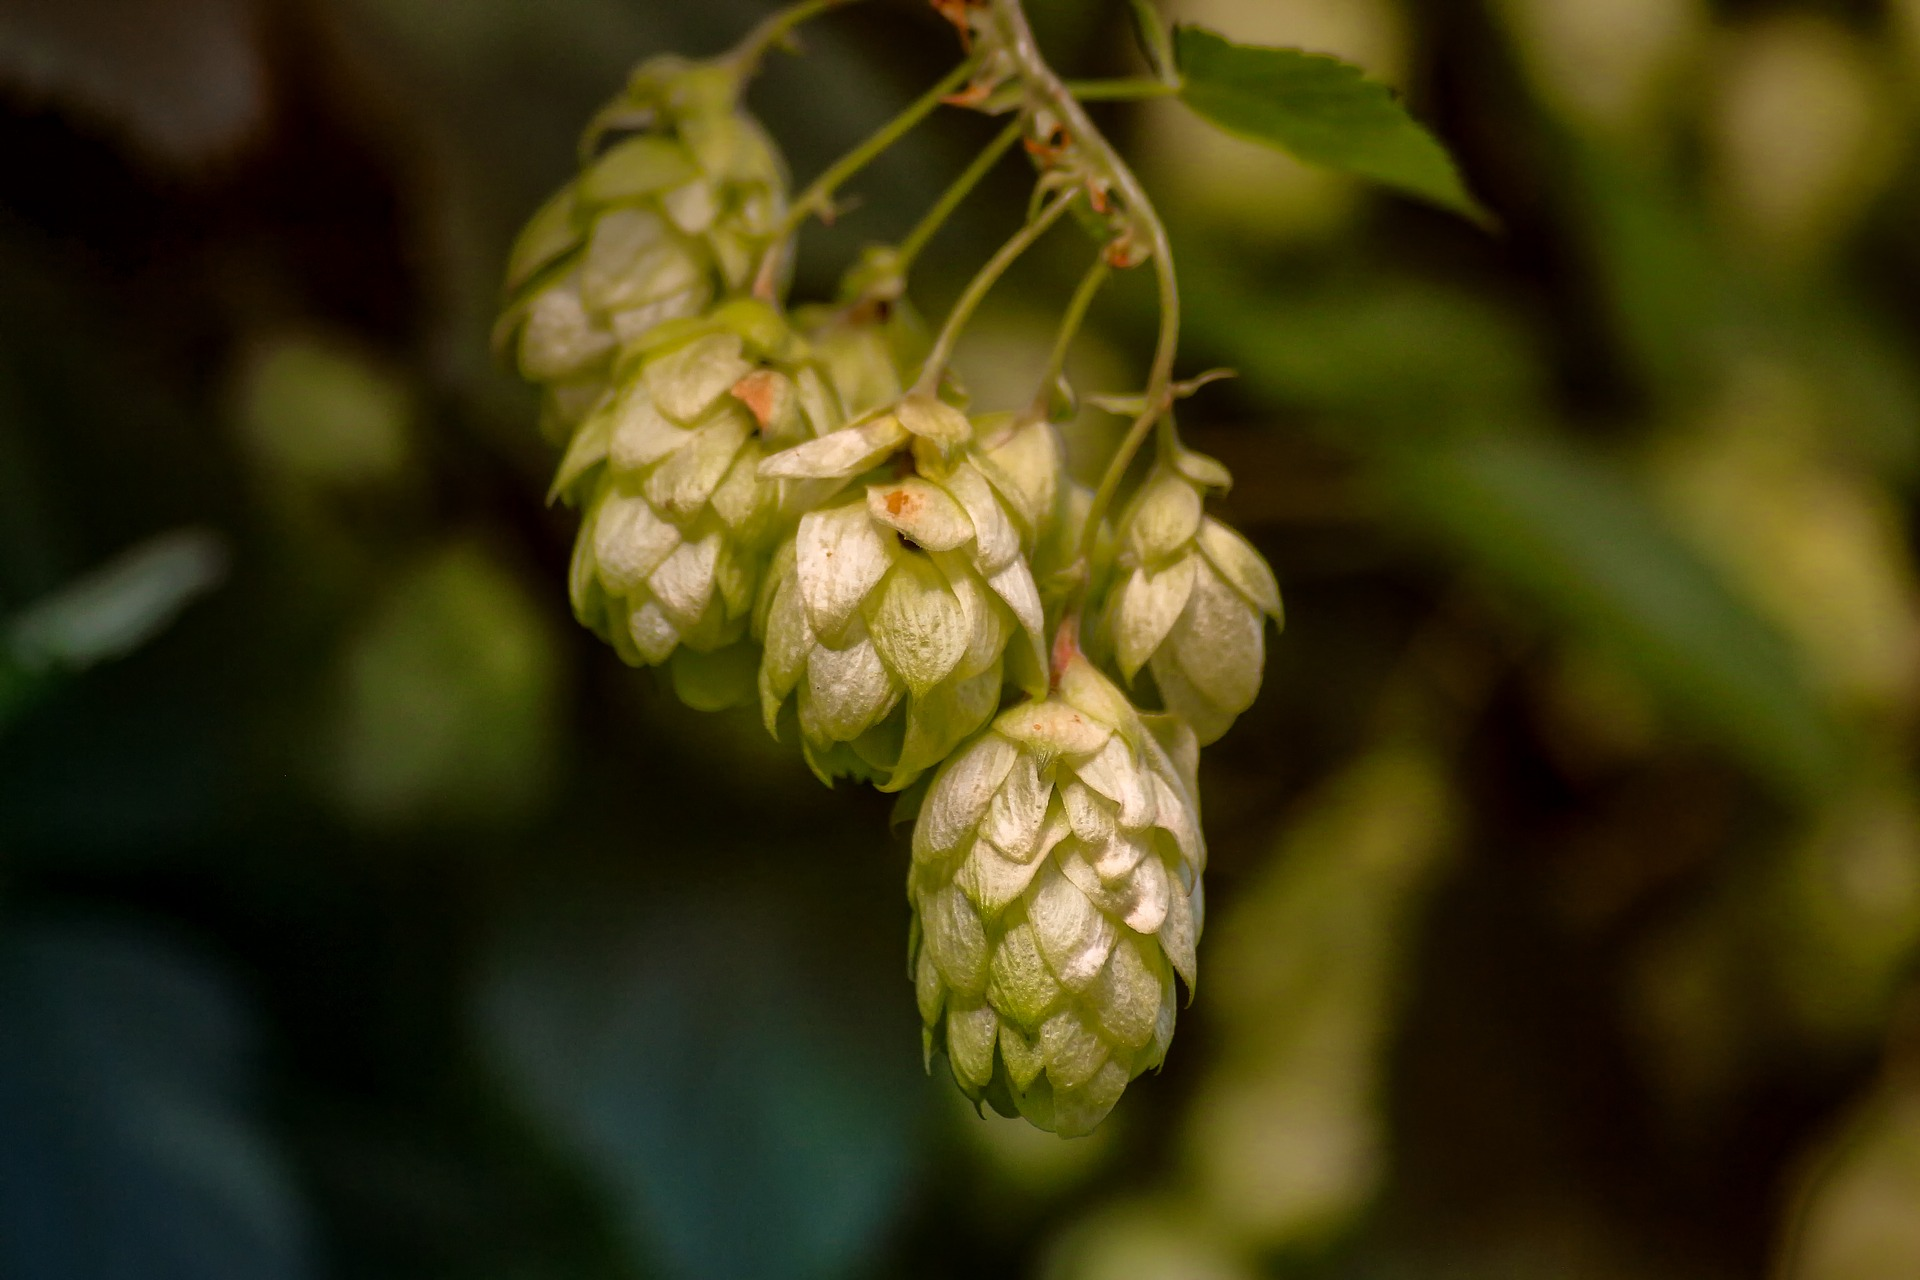 This new yeast could be used to make beer totally free of actual hops. It took the scientists three years to get the right aroma and flavors, and after a blind taste test, brewers couldn't tell the difference between beer made with real hops and beer made with the modified yeast.